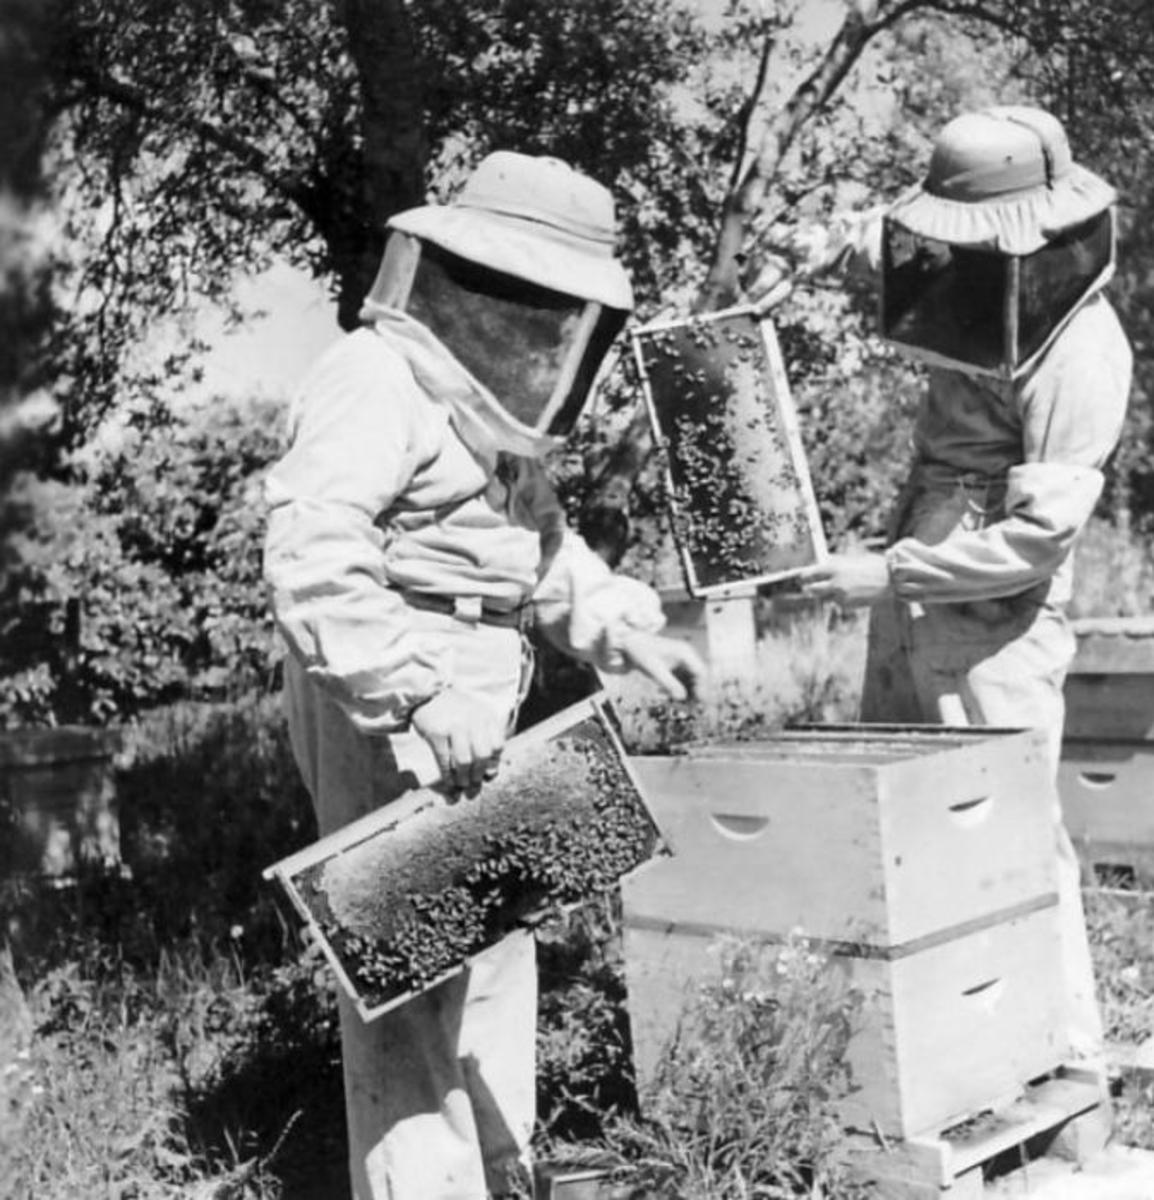 Protective Clothing for Beekeepers: Beekeeping Suits, Jackets, Veils, and Gloves